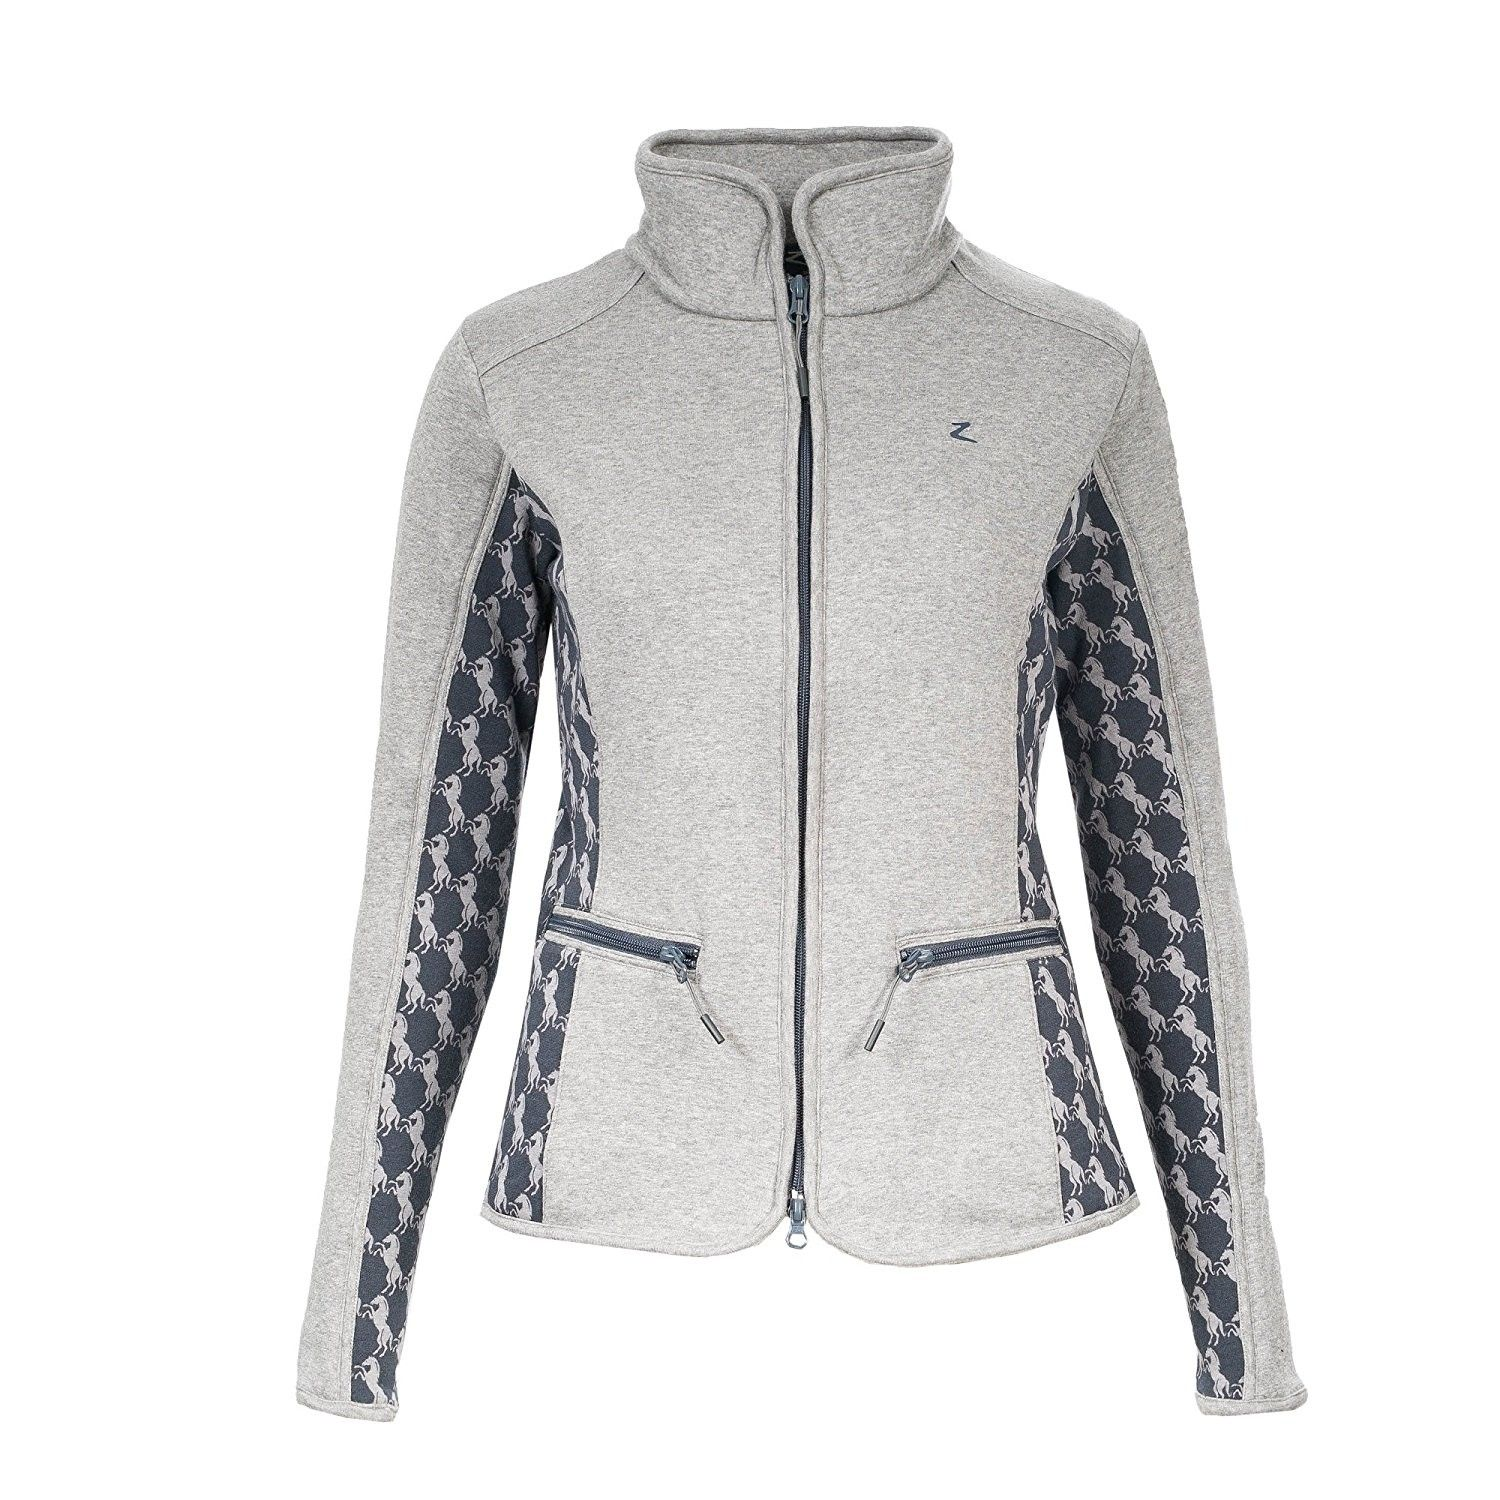 fe602b3bf48 Women's Clothing, Coats, Jackets & Vests, Active & Performance, Fleece,  Abrianna Women's Fleece - Plume Grey - CO185YSG722 #women #fashion  #clothing #style ...